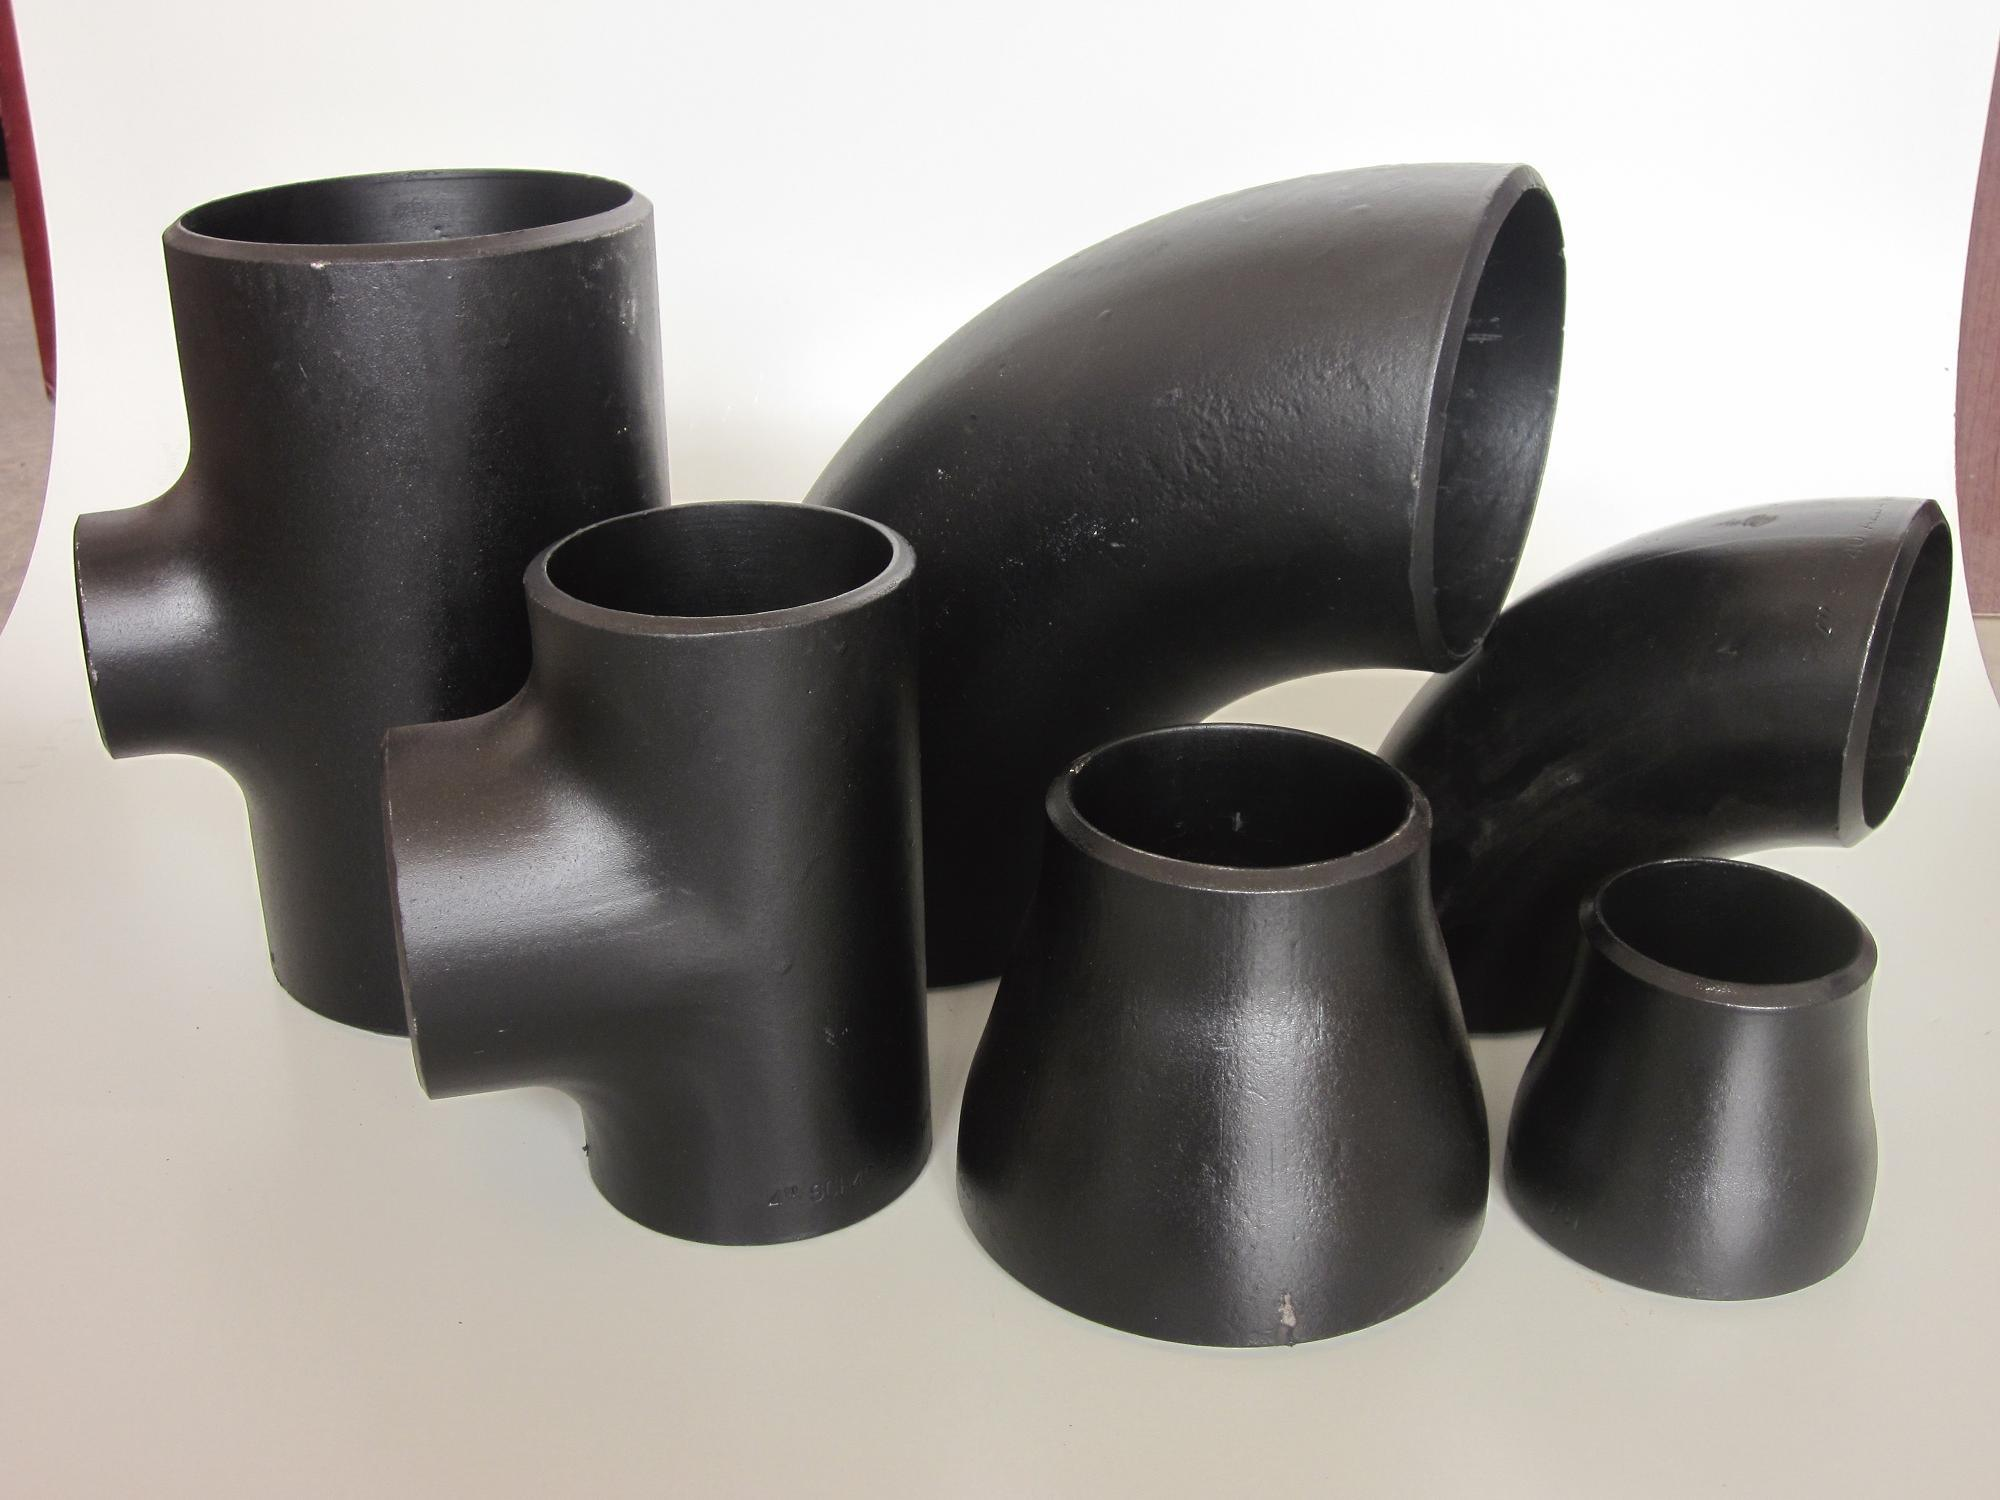 China Carbon Steel/Stainless Steel Pipe Fittings